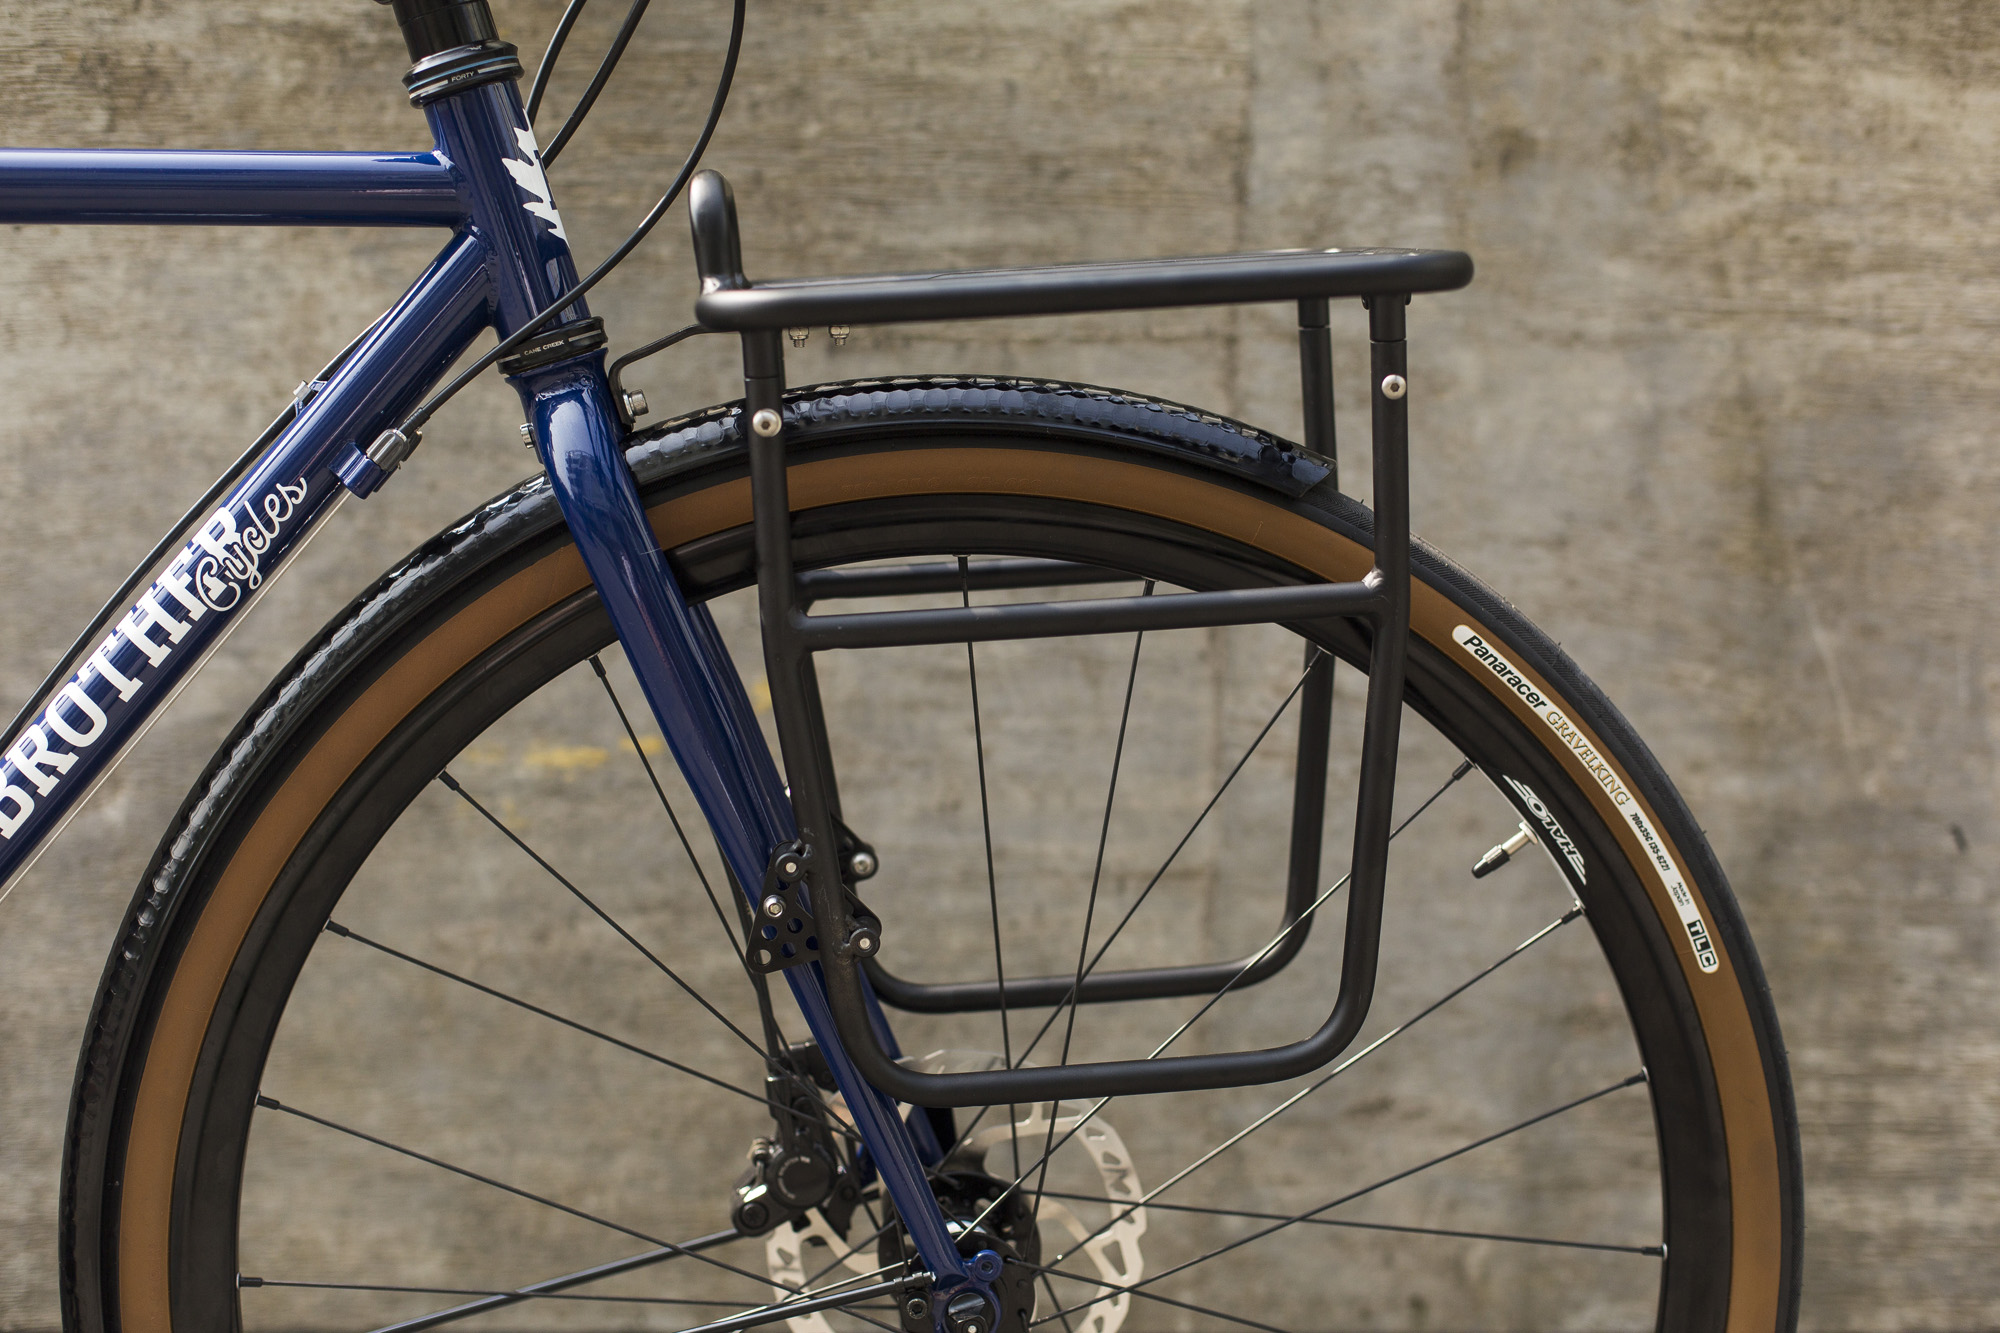 seabass-cycles-instore-bikes-17-april-2019-brother-cycles-kepler-disc-custom-build-midnight-blue-5073.jpg